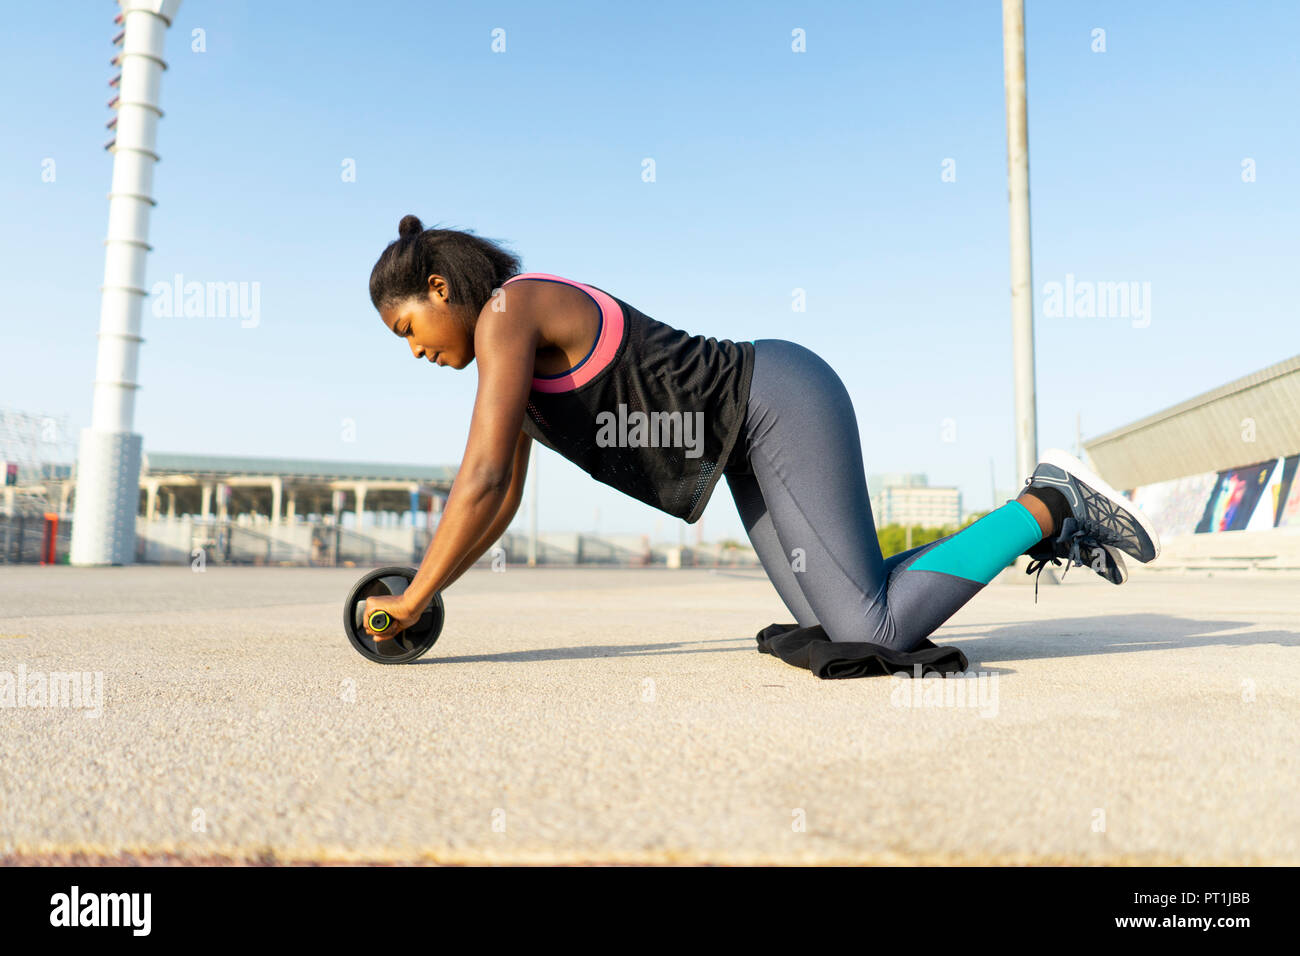 young sportive woman training with an ab wheel - Stock Image